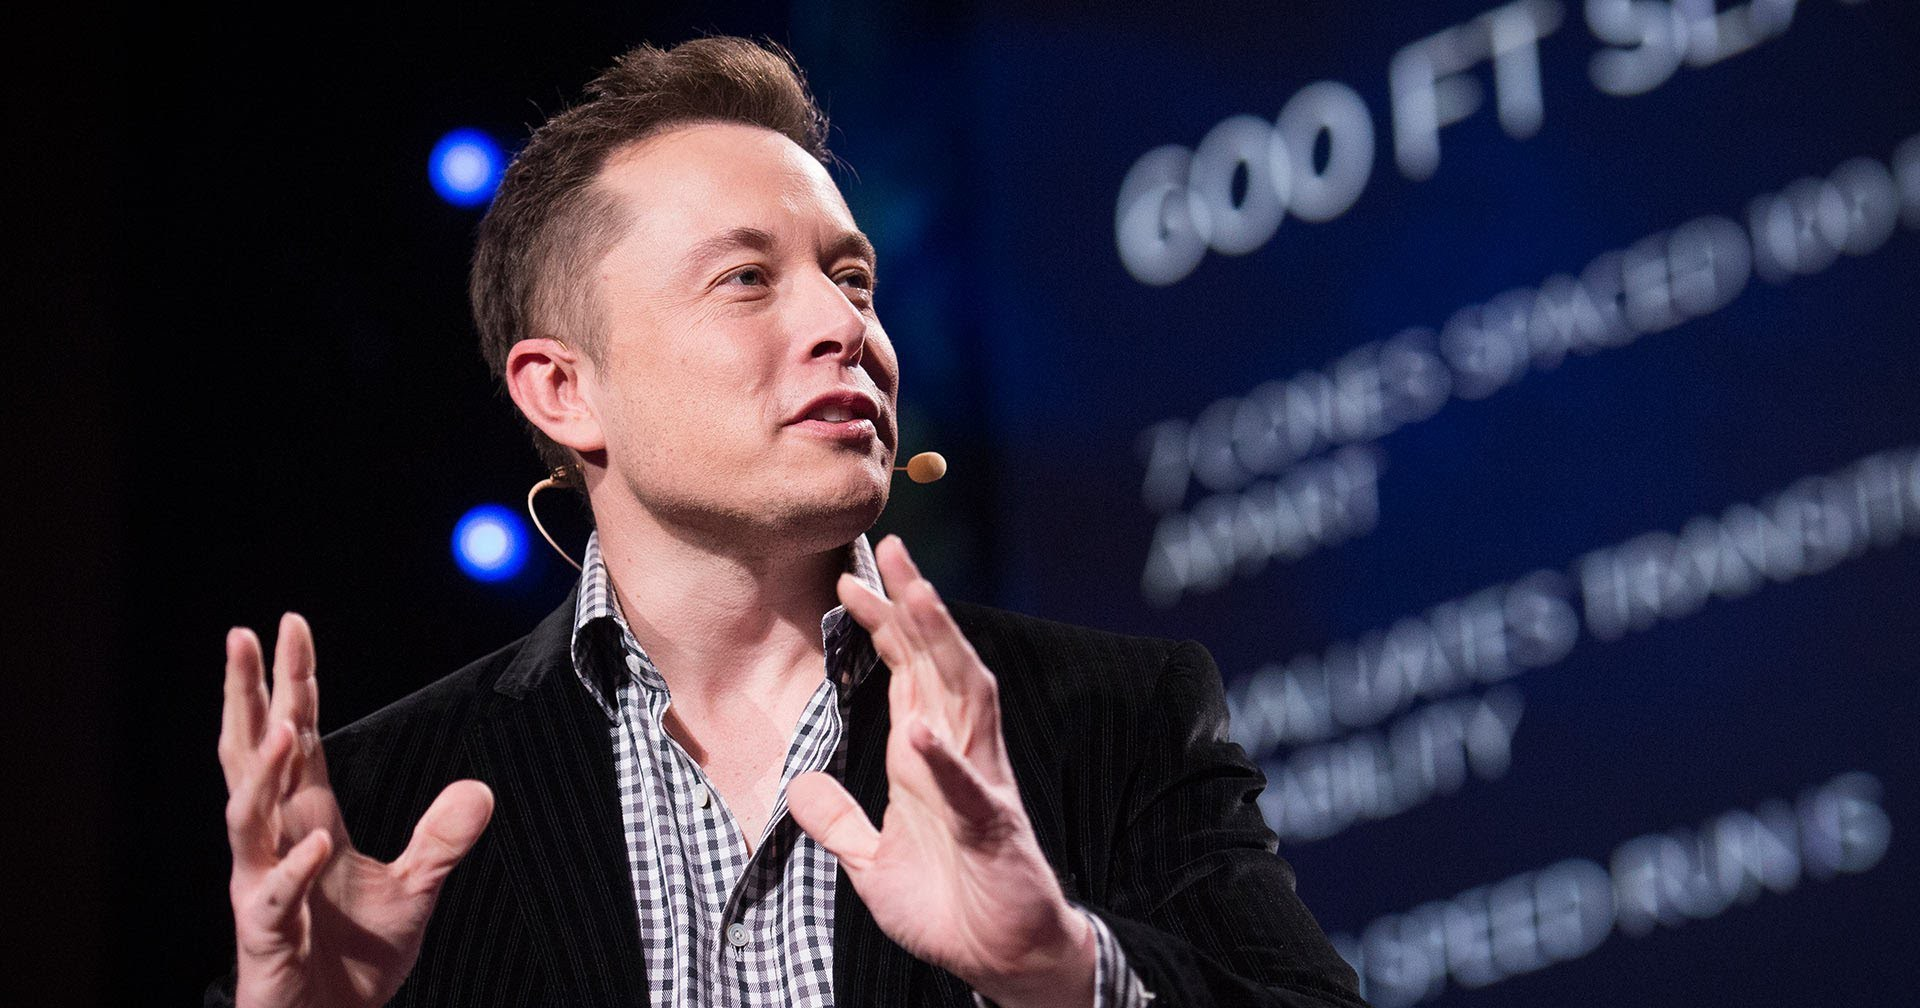 Elon Musk: Apple hires those who have been fired from Tesla51 review